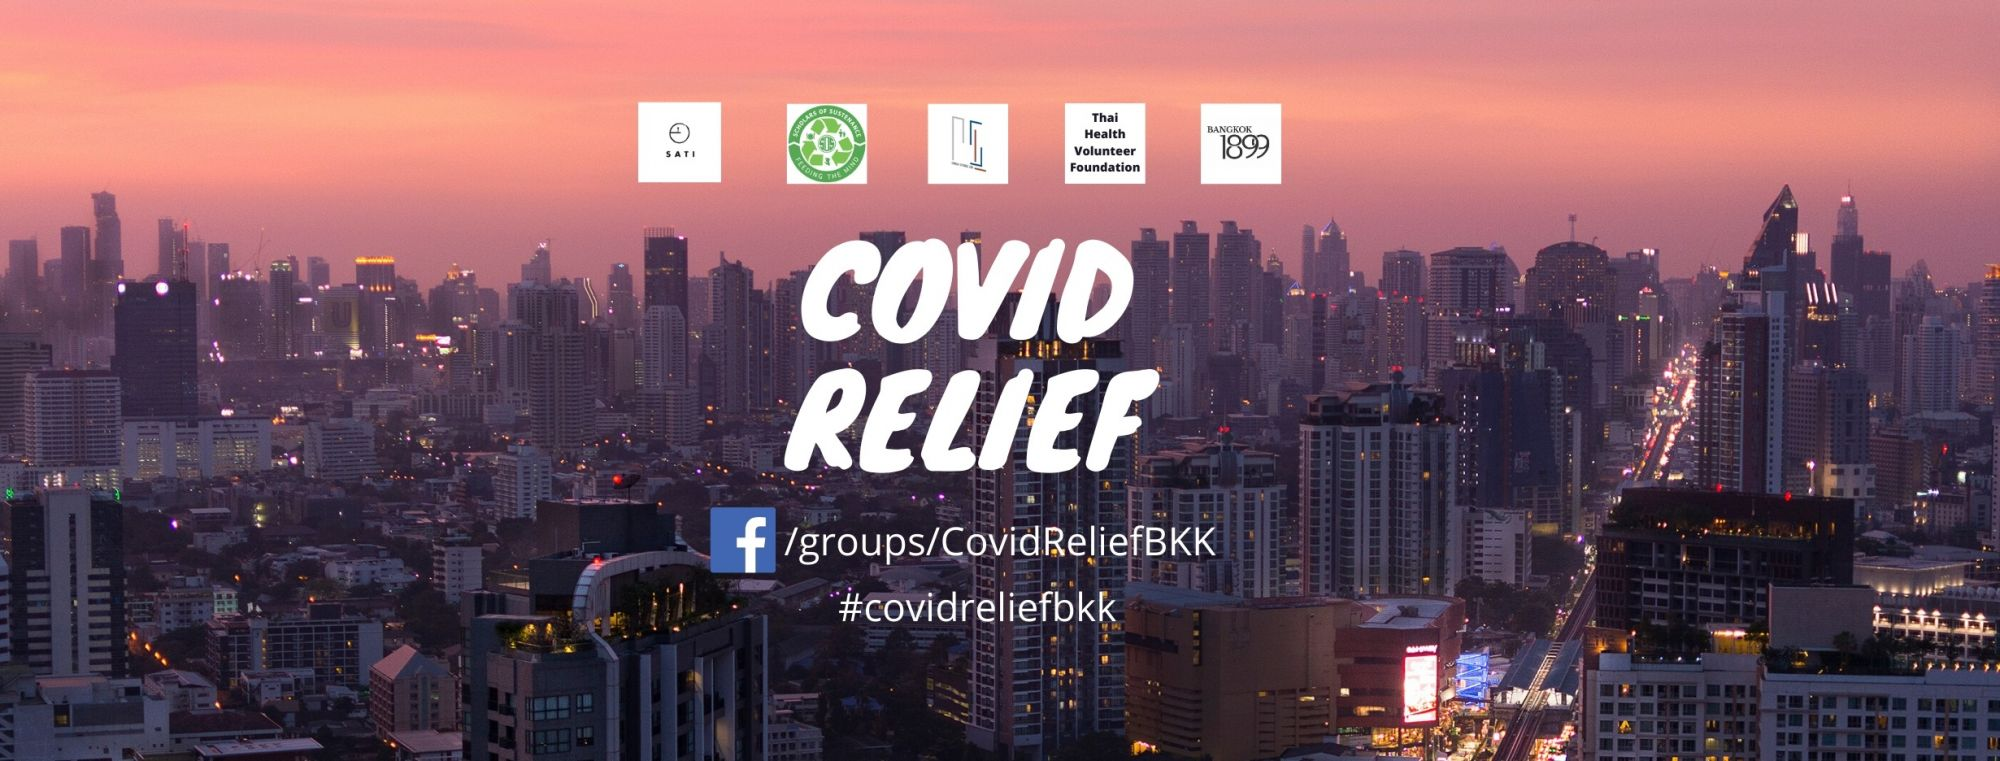 Join 'Covid Relief Bangkok' On Facebook And Literally Save Lives